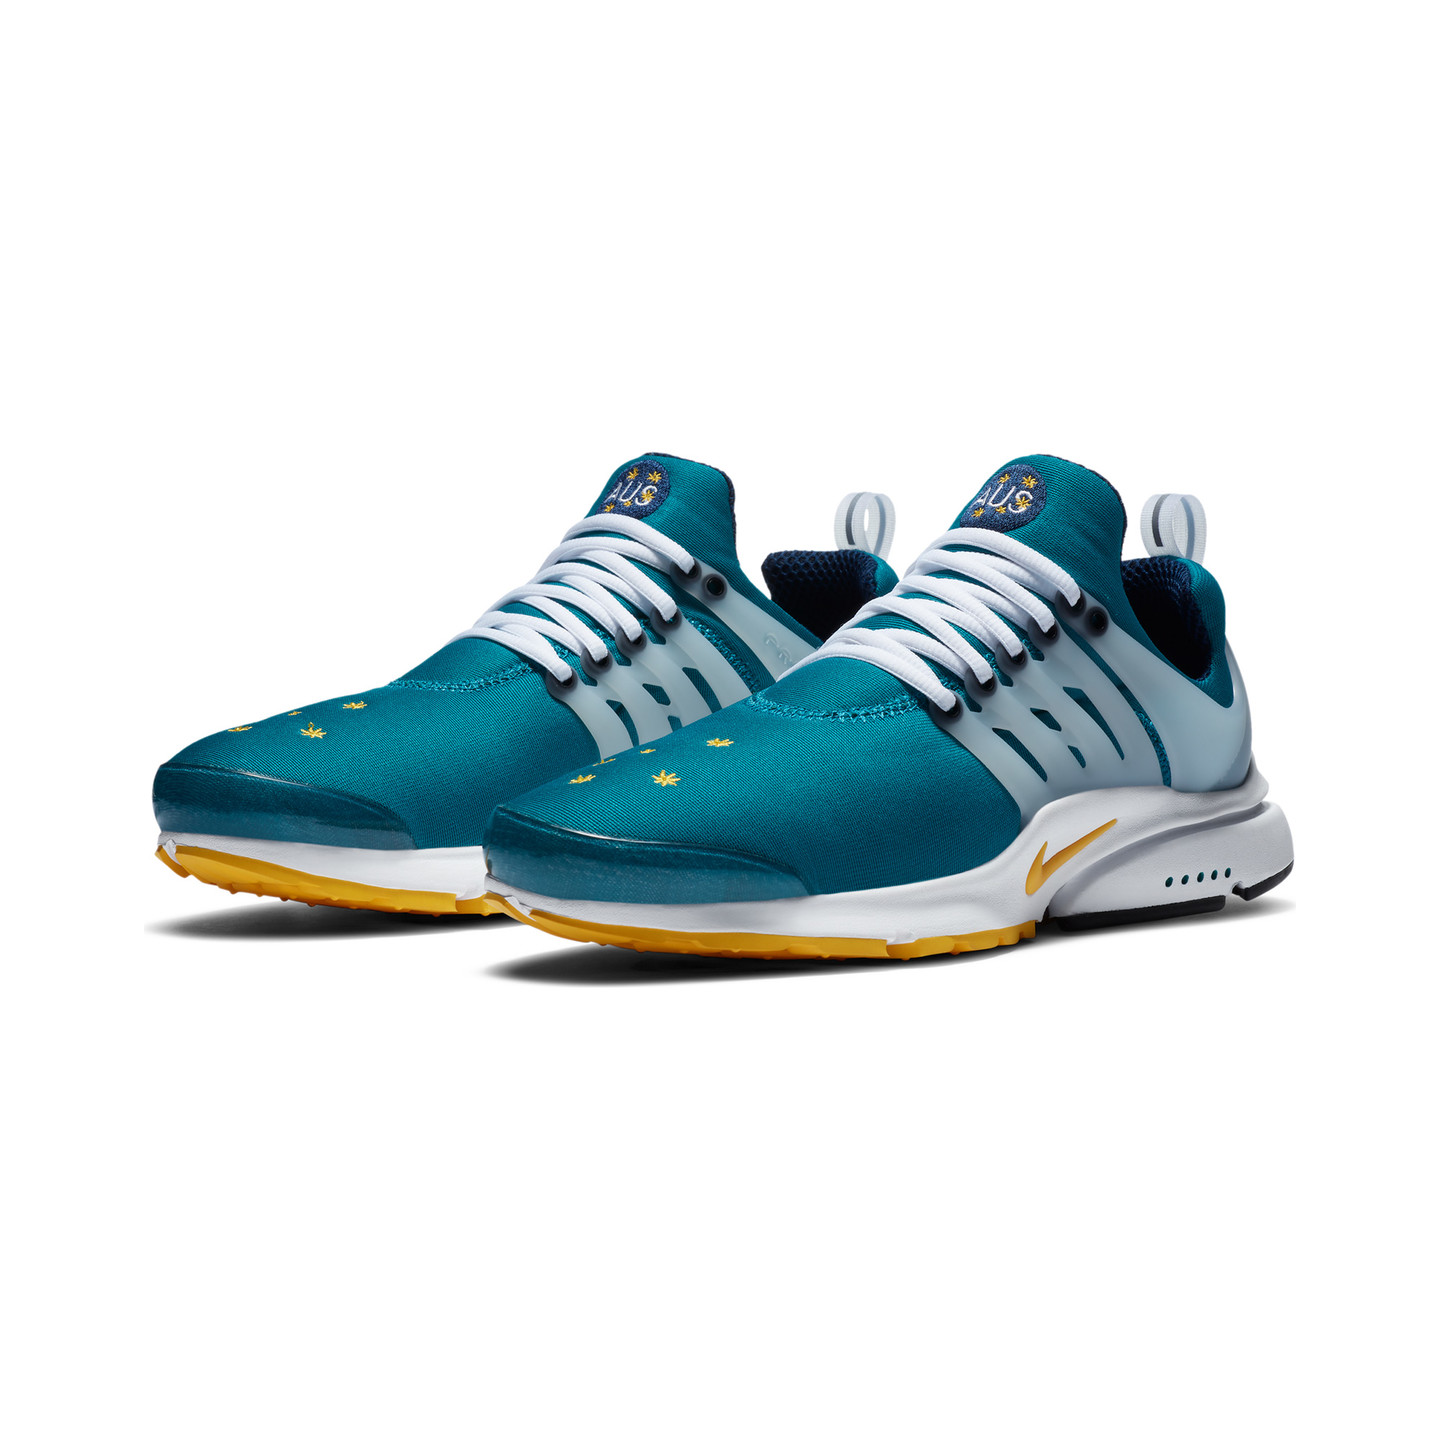 Nike Air Presto 'Australia' Freshwater / Varsity Maize / Midnight Navy CJ1229-301